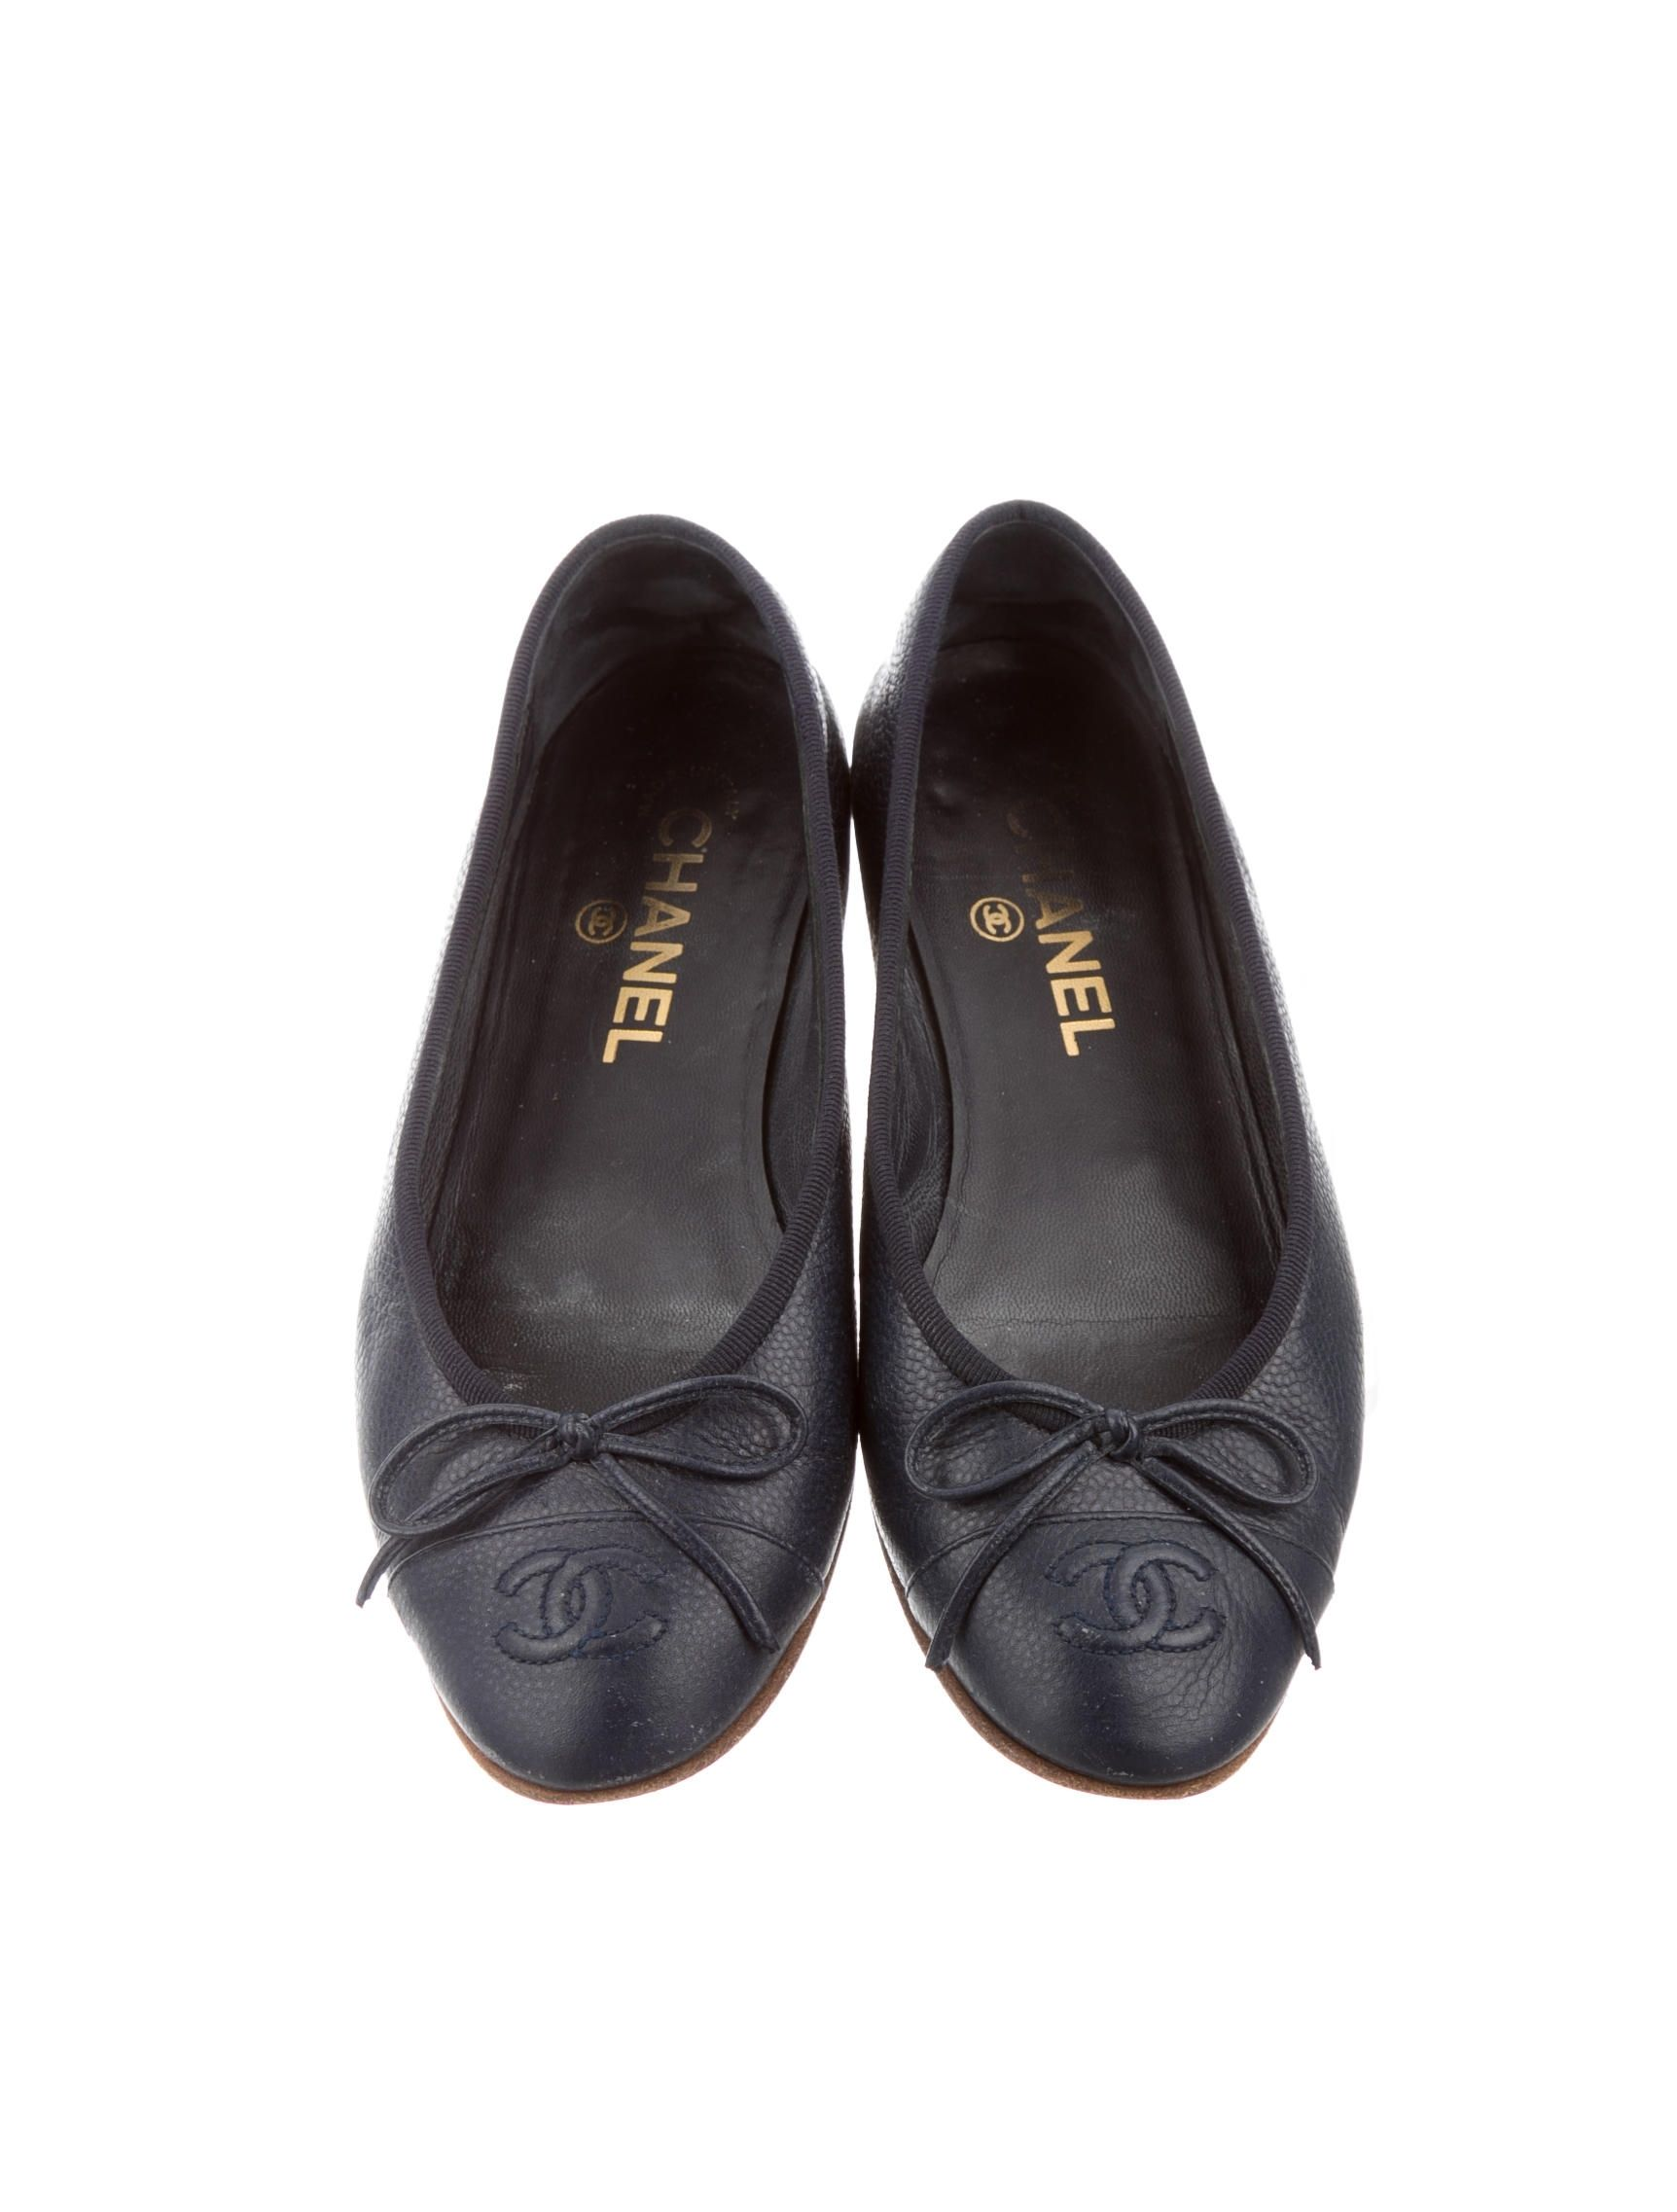 6d9d2da39d3 Chanel Navy Flats. Get the must-have flats of this season! These ...